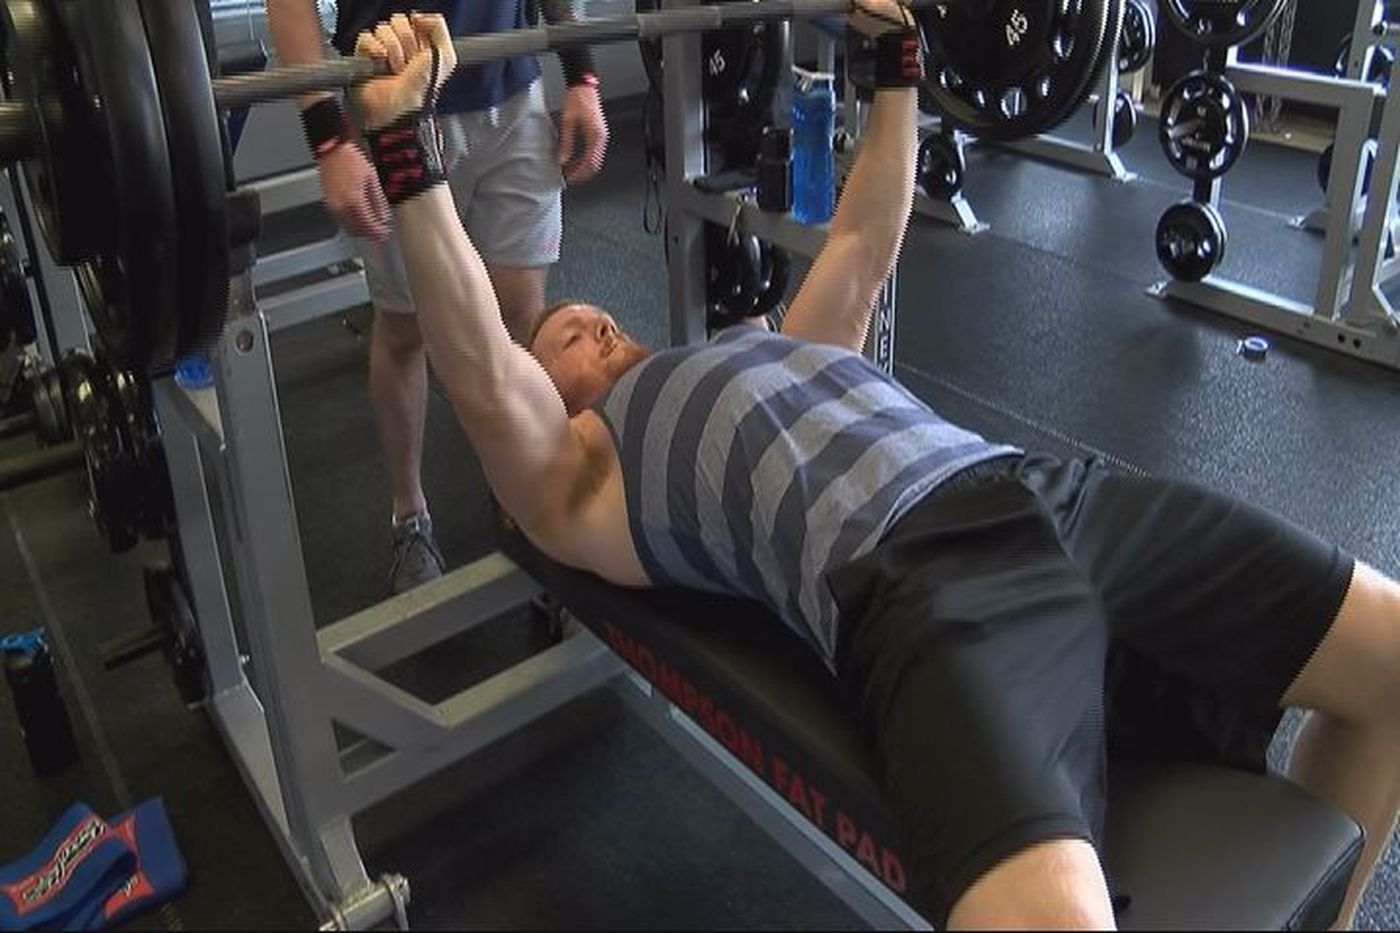 Bodybuilding has become addictive in a positive way for a Gulfport